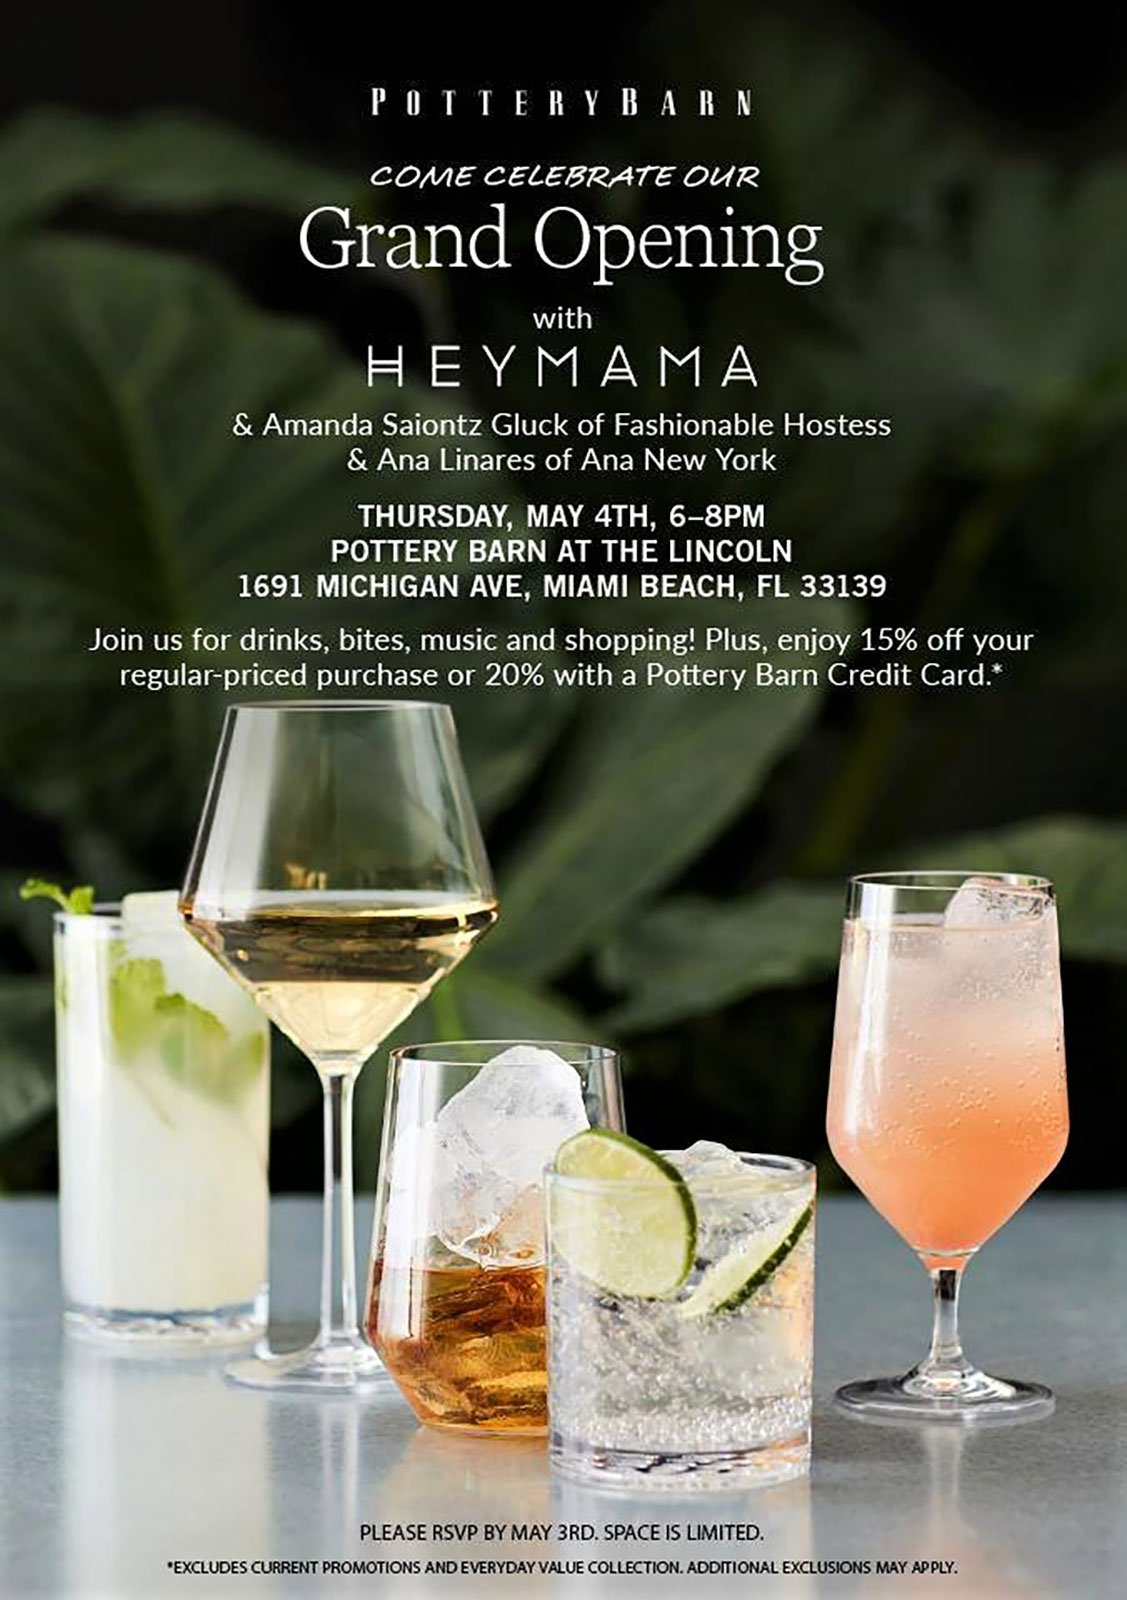 Invitation for the Pottery Barn South Beach Grand Opening Event hosted by Heymama